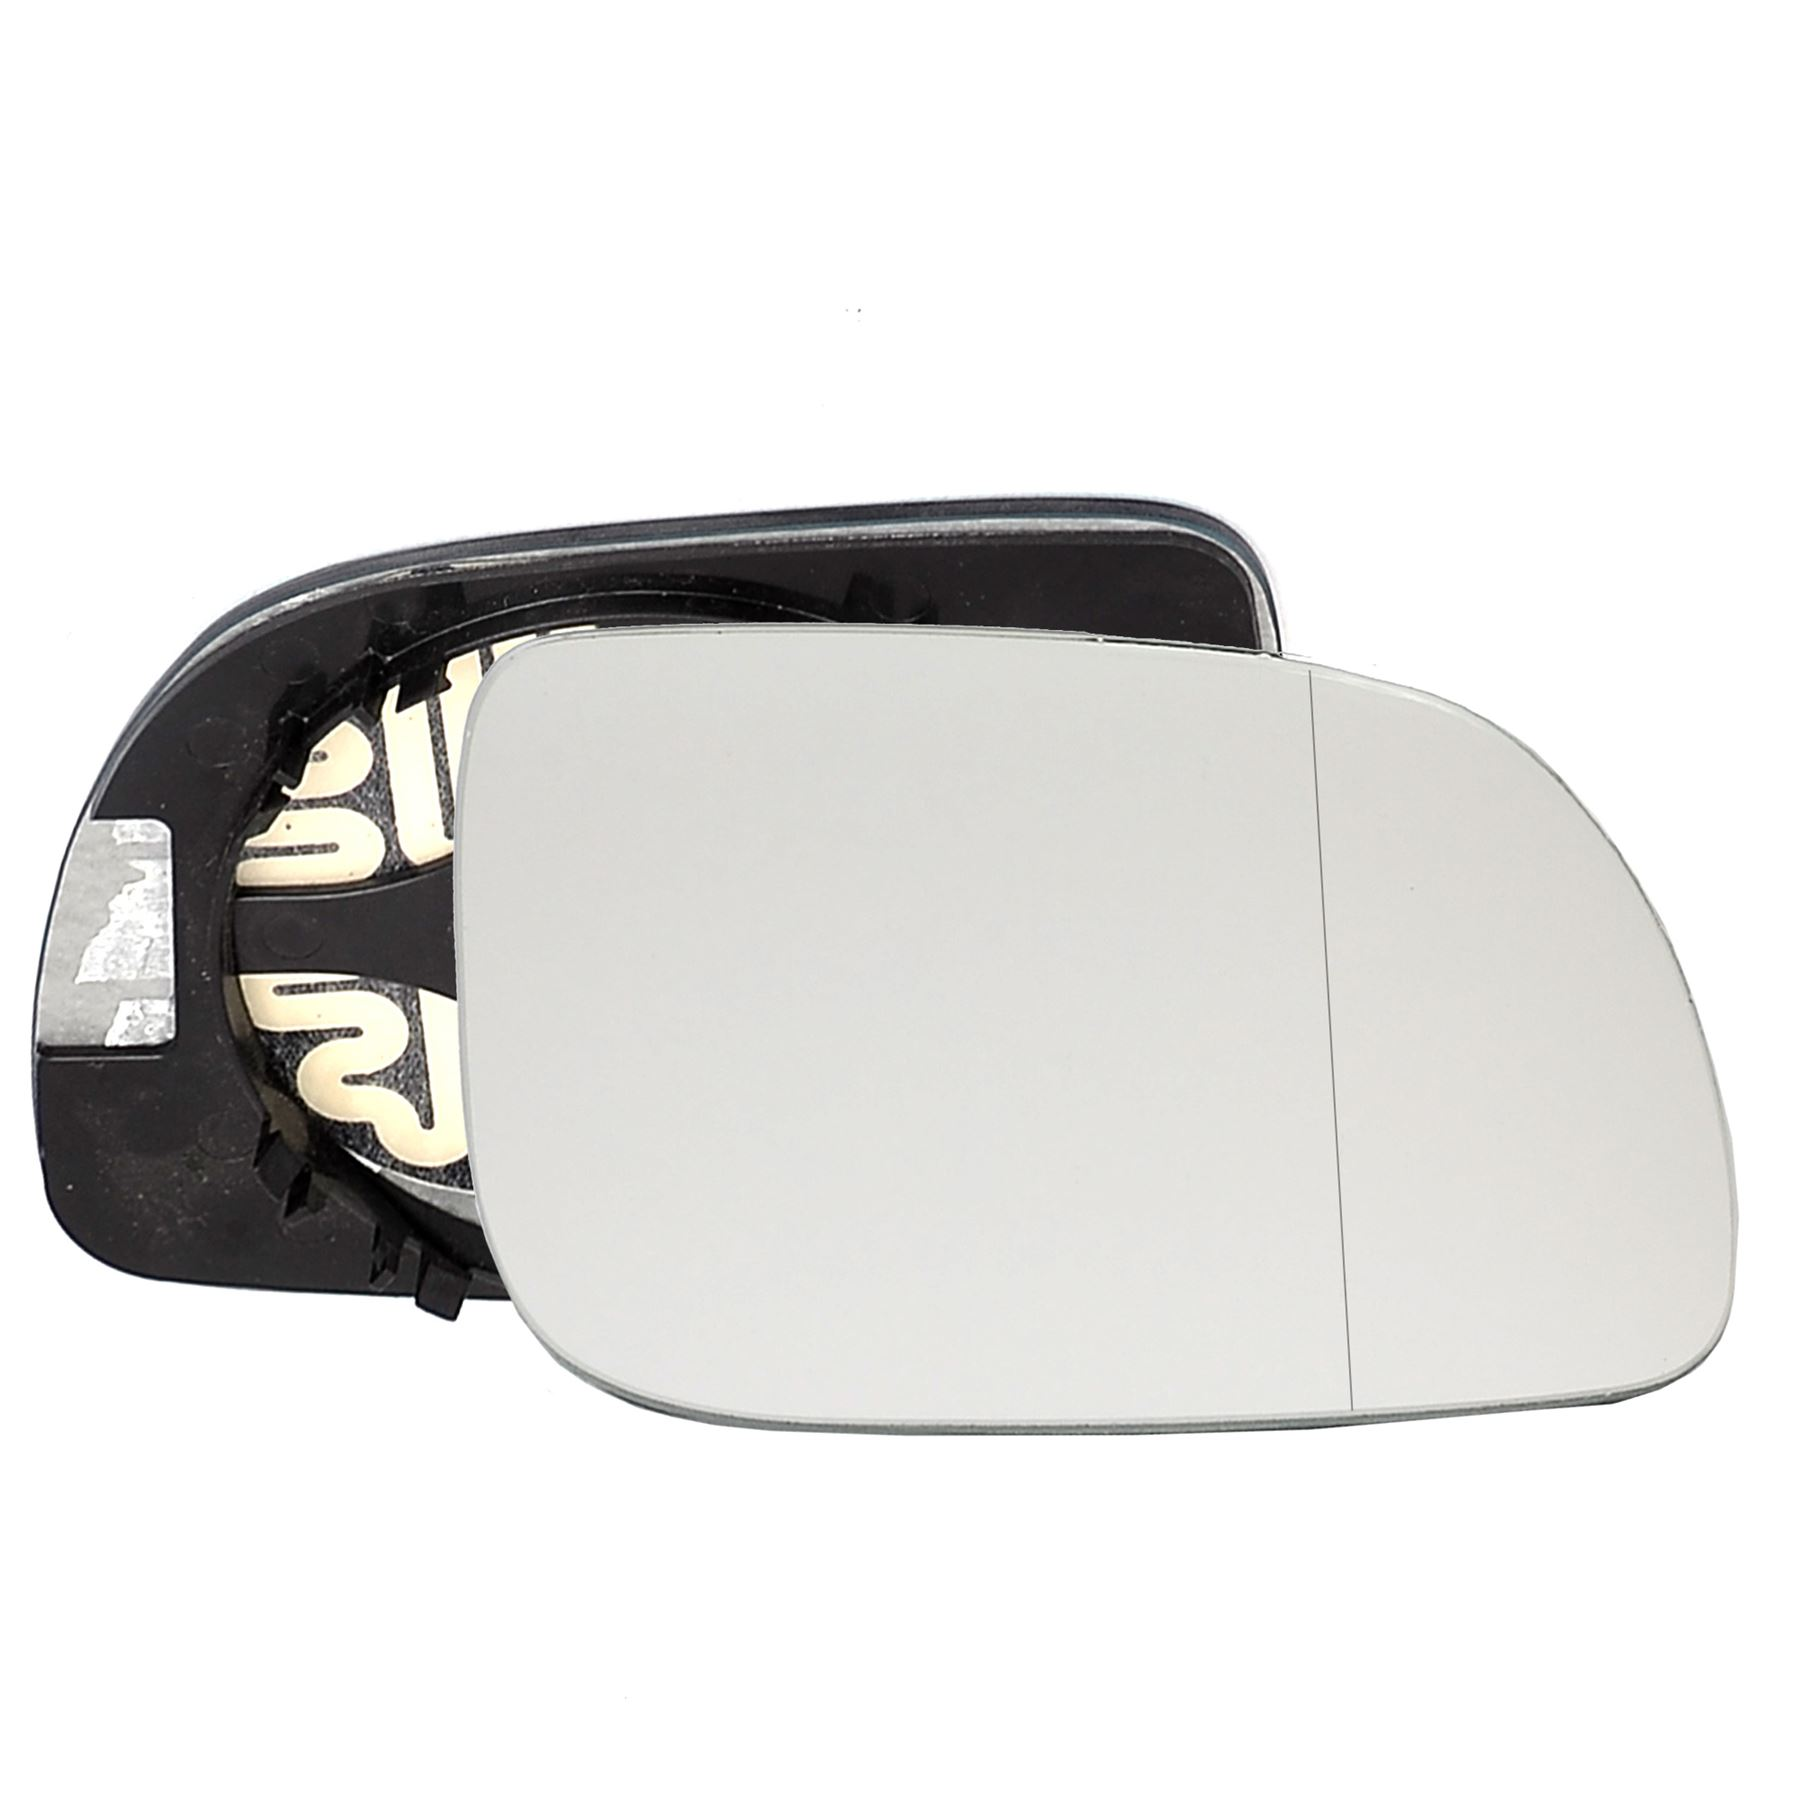 Toyota Rav 4 2001 to 2005 Stick On Wing Mirror Glass Drivers Side RH